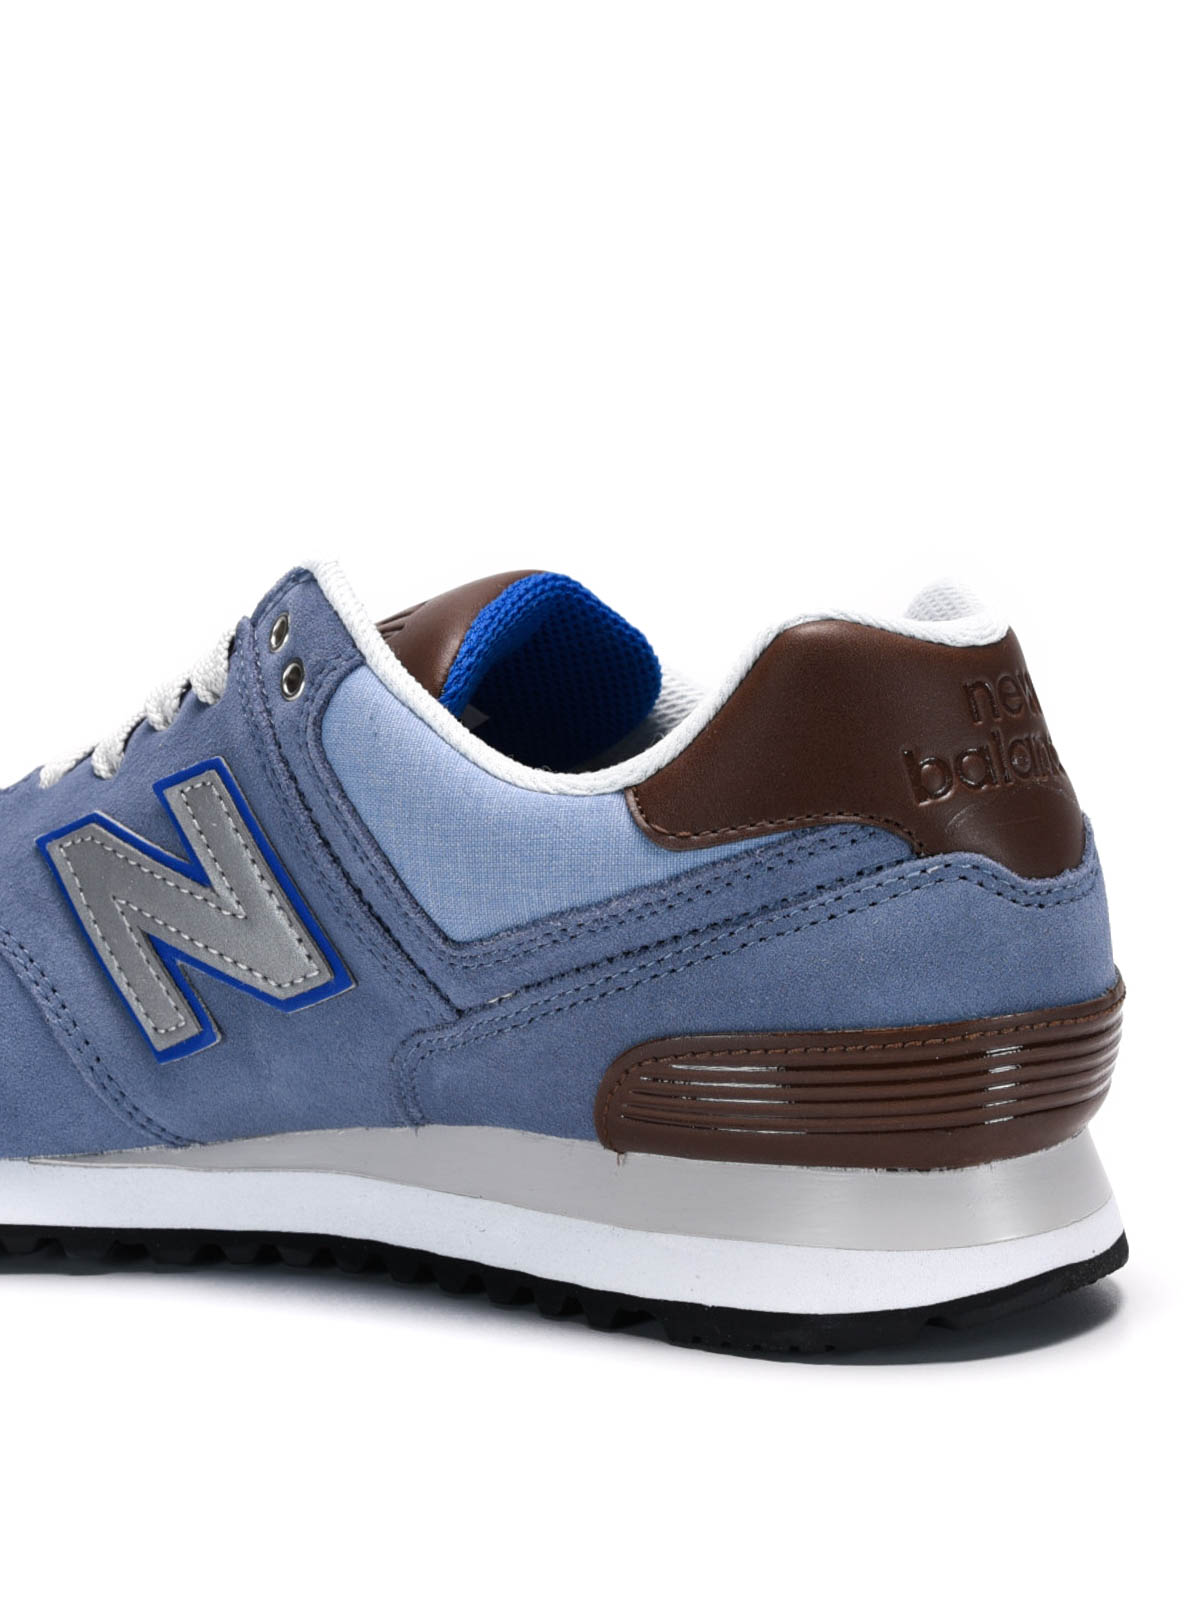 san francisco dcb2b 5ea9f New Balance - 574 Cruisin sneakers - trainers - ML574BCD ...